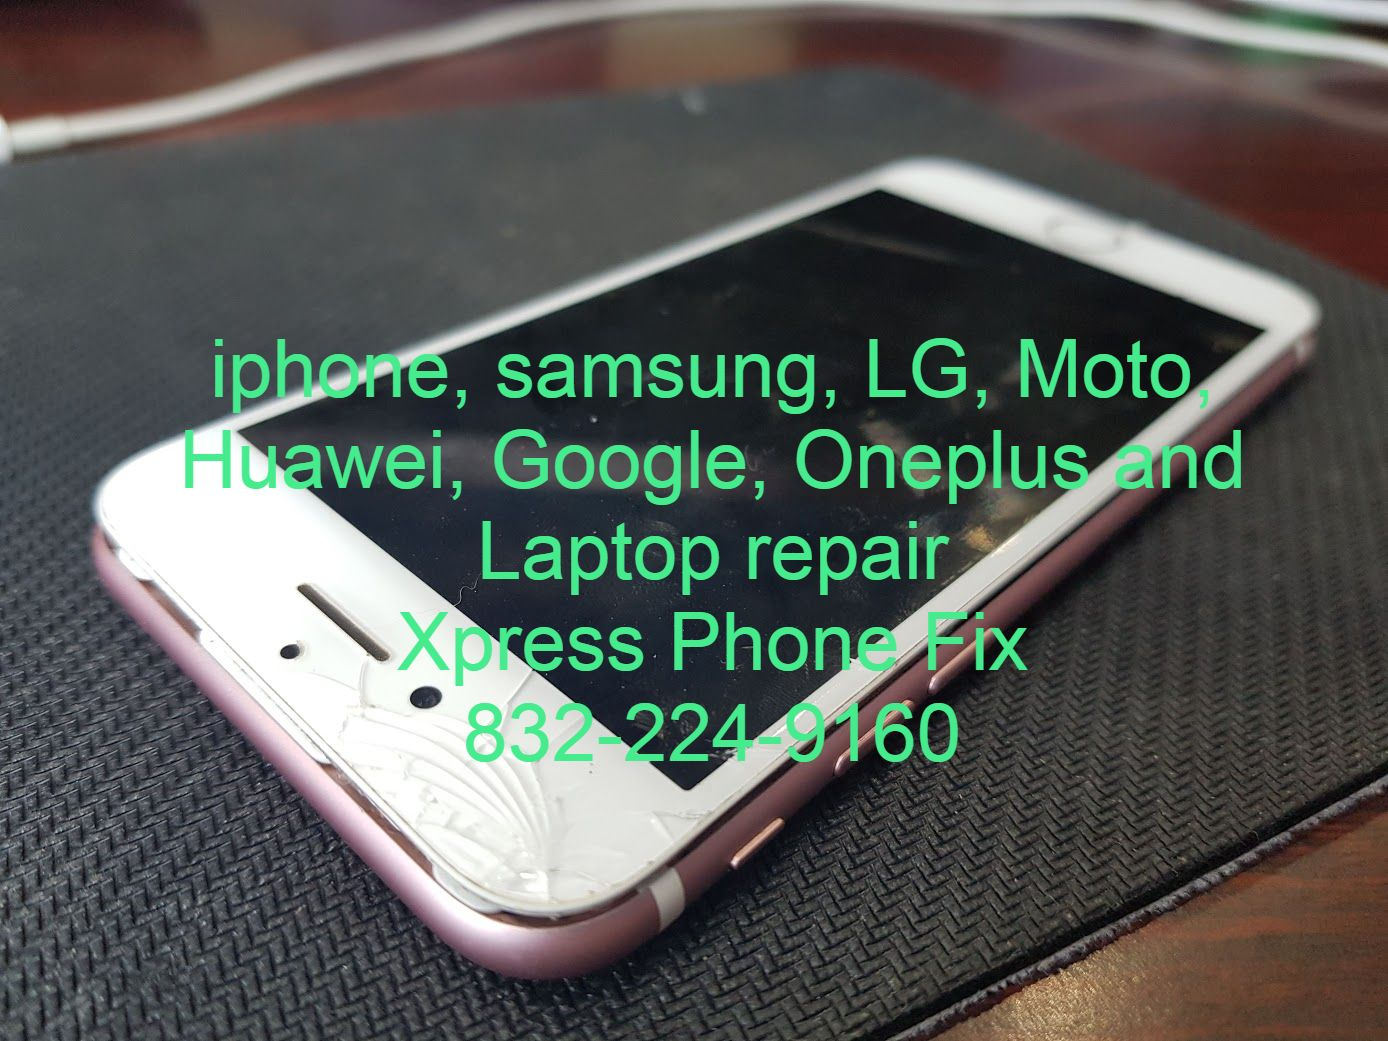 iphonerepair cellphonerepair houstoniphonerepair